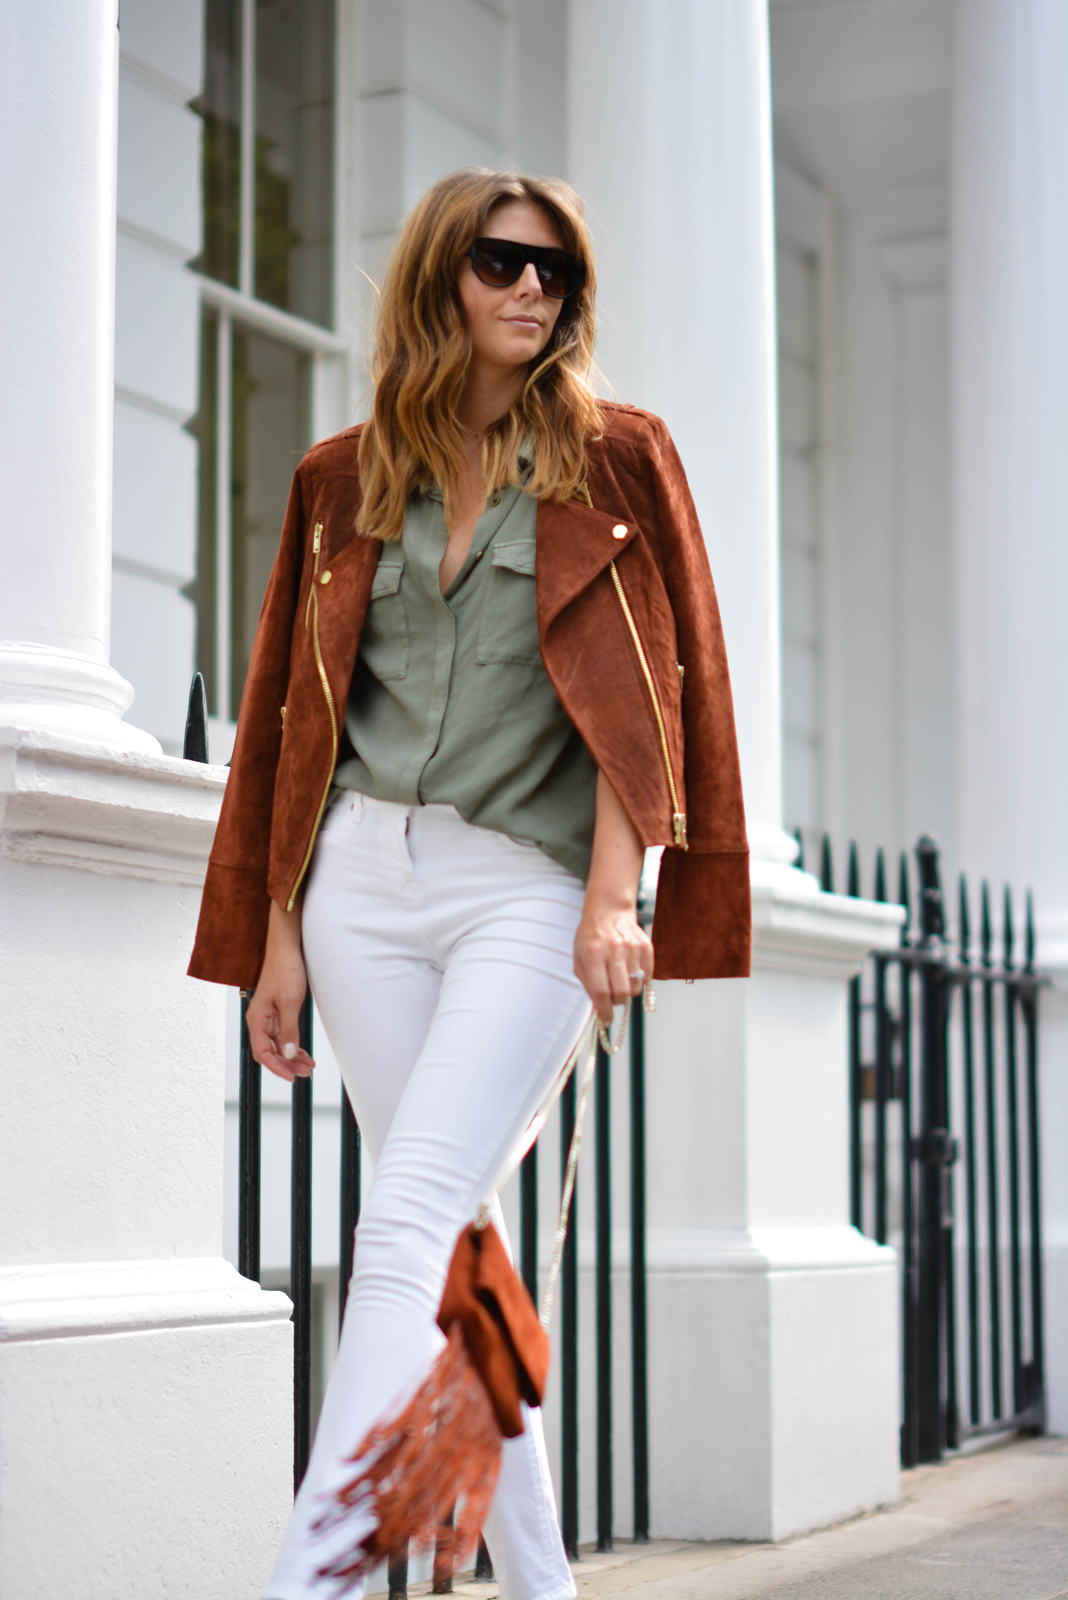 EJSTYLE - Rust suede biker jacket, Khaki shirt, white jeans, rust suede tassel fringe cross body bag, flat top square sunglasses, street style london